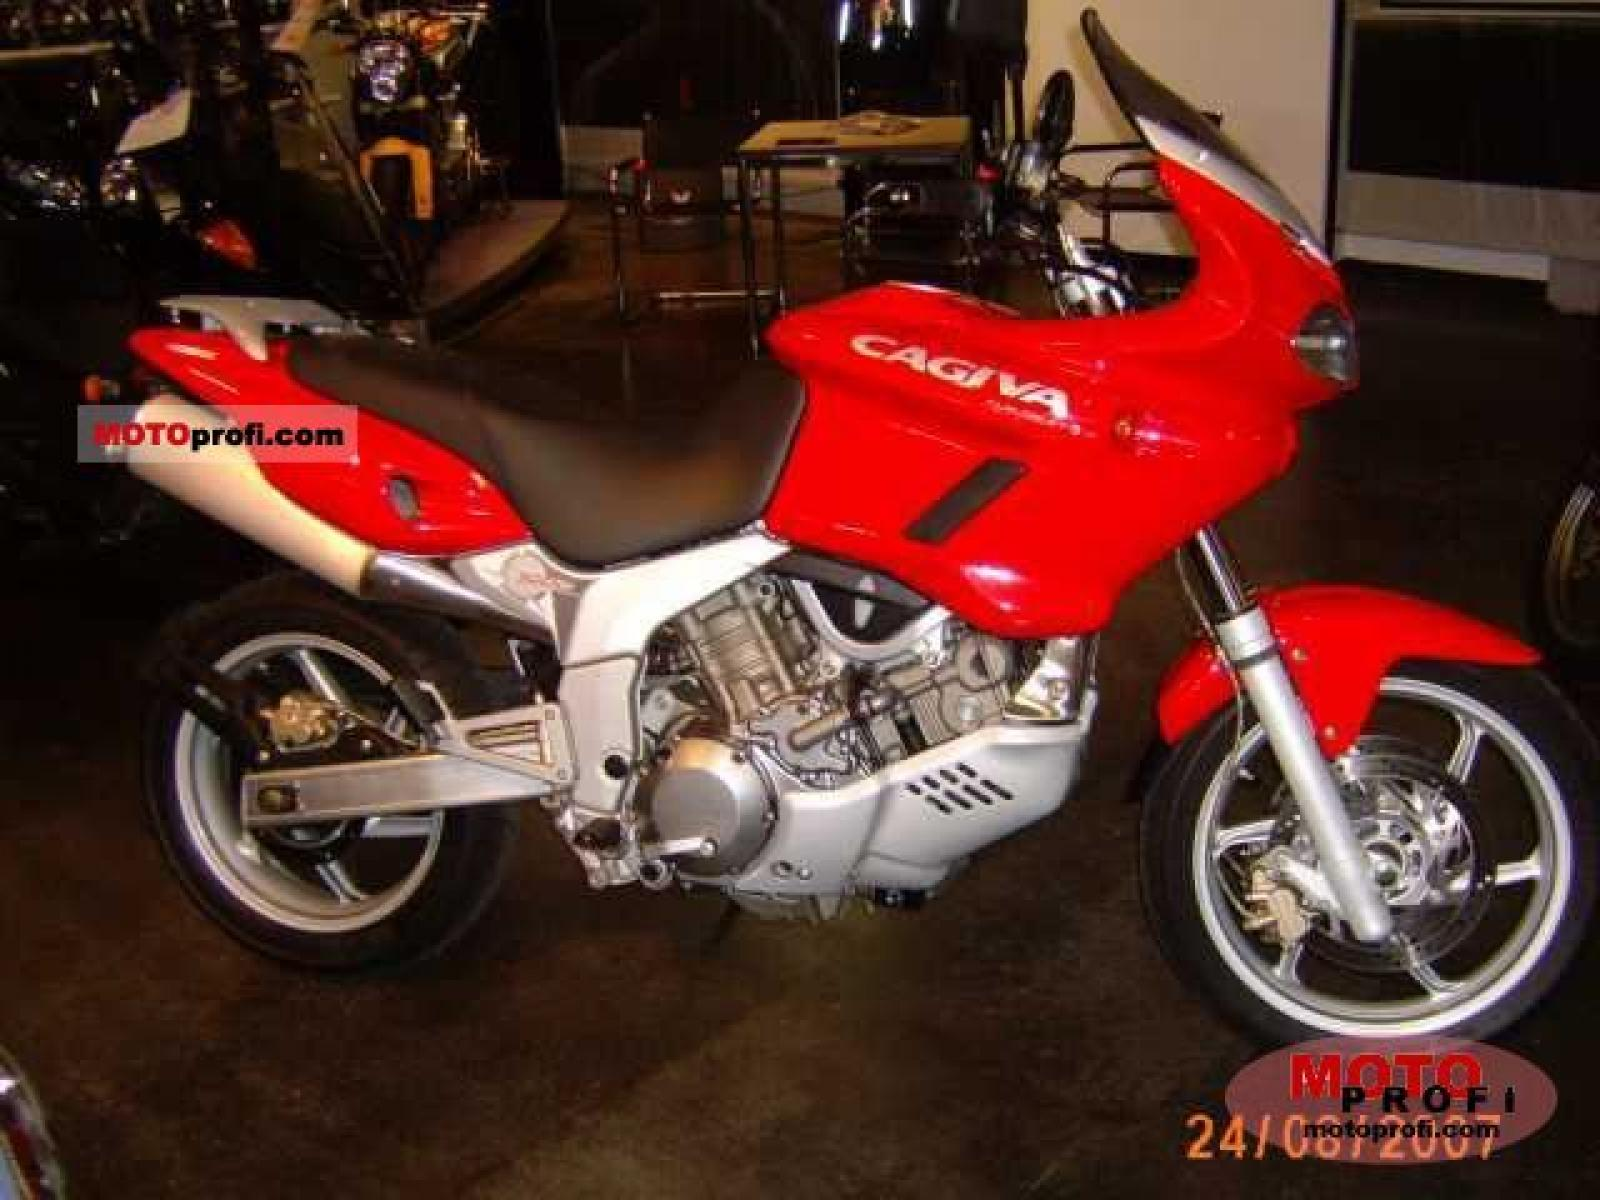 Cagiva Navigator 1000 2006 images #67720